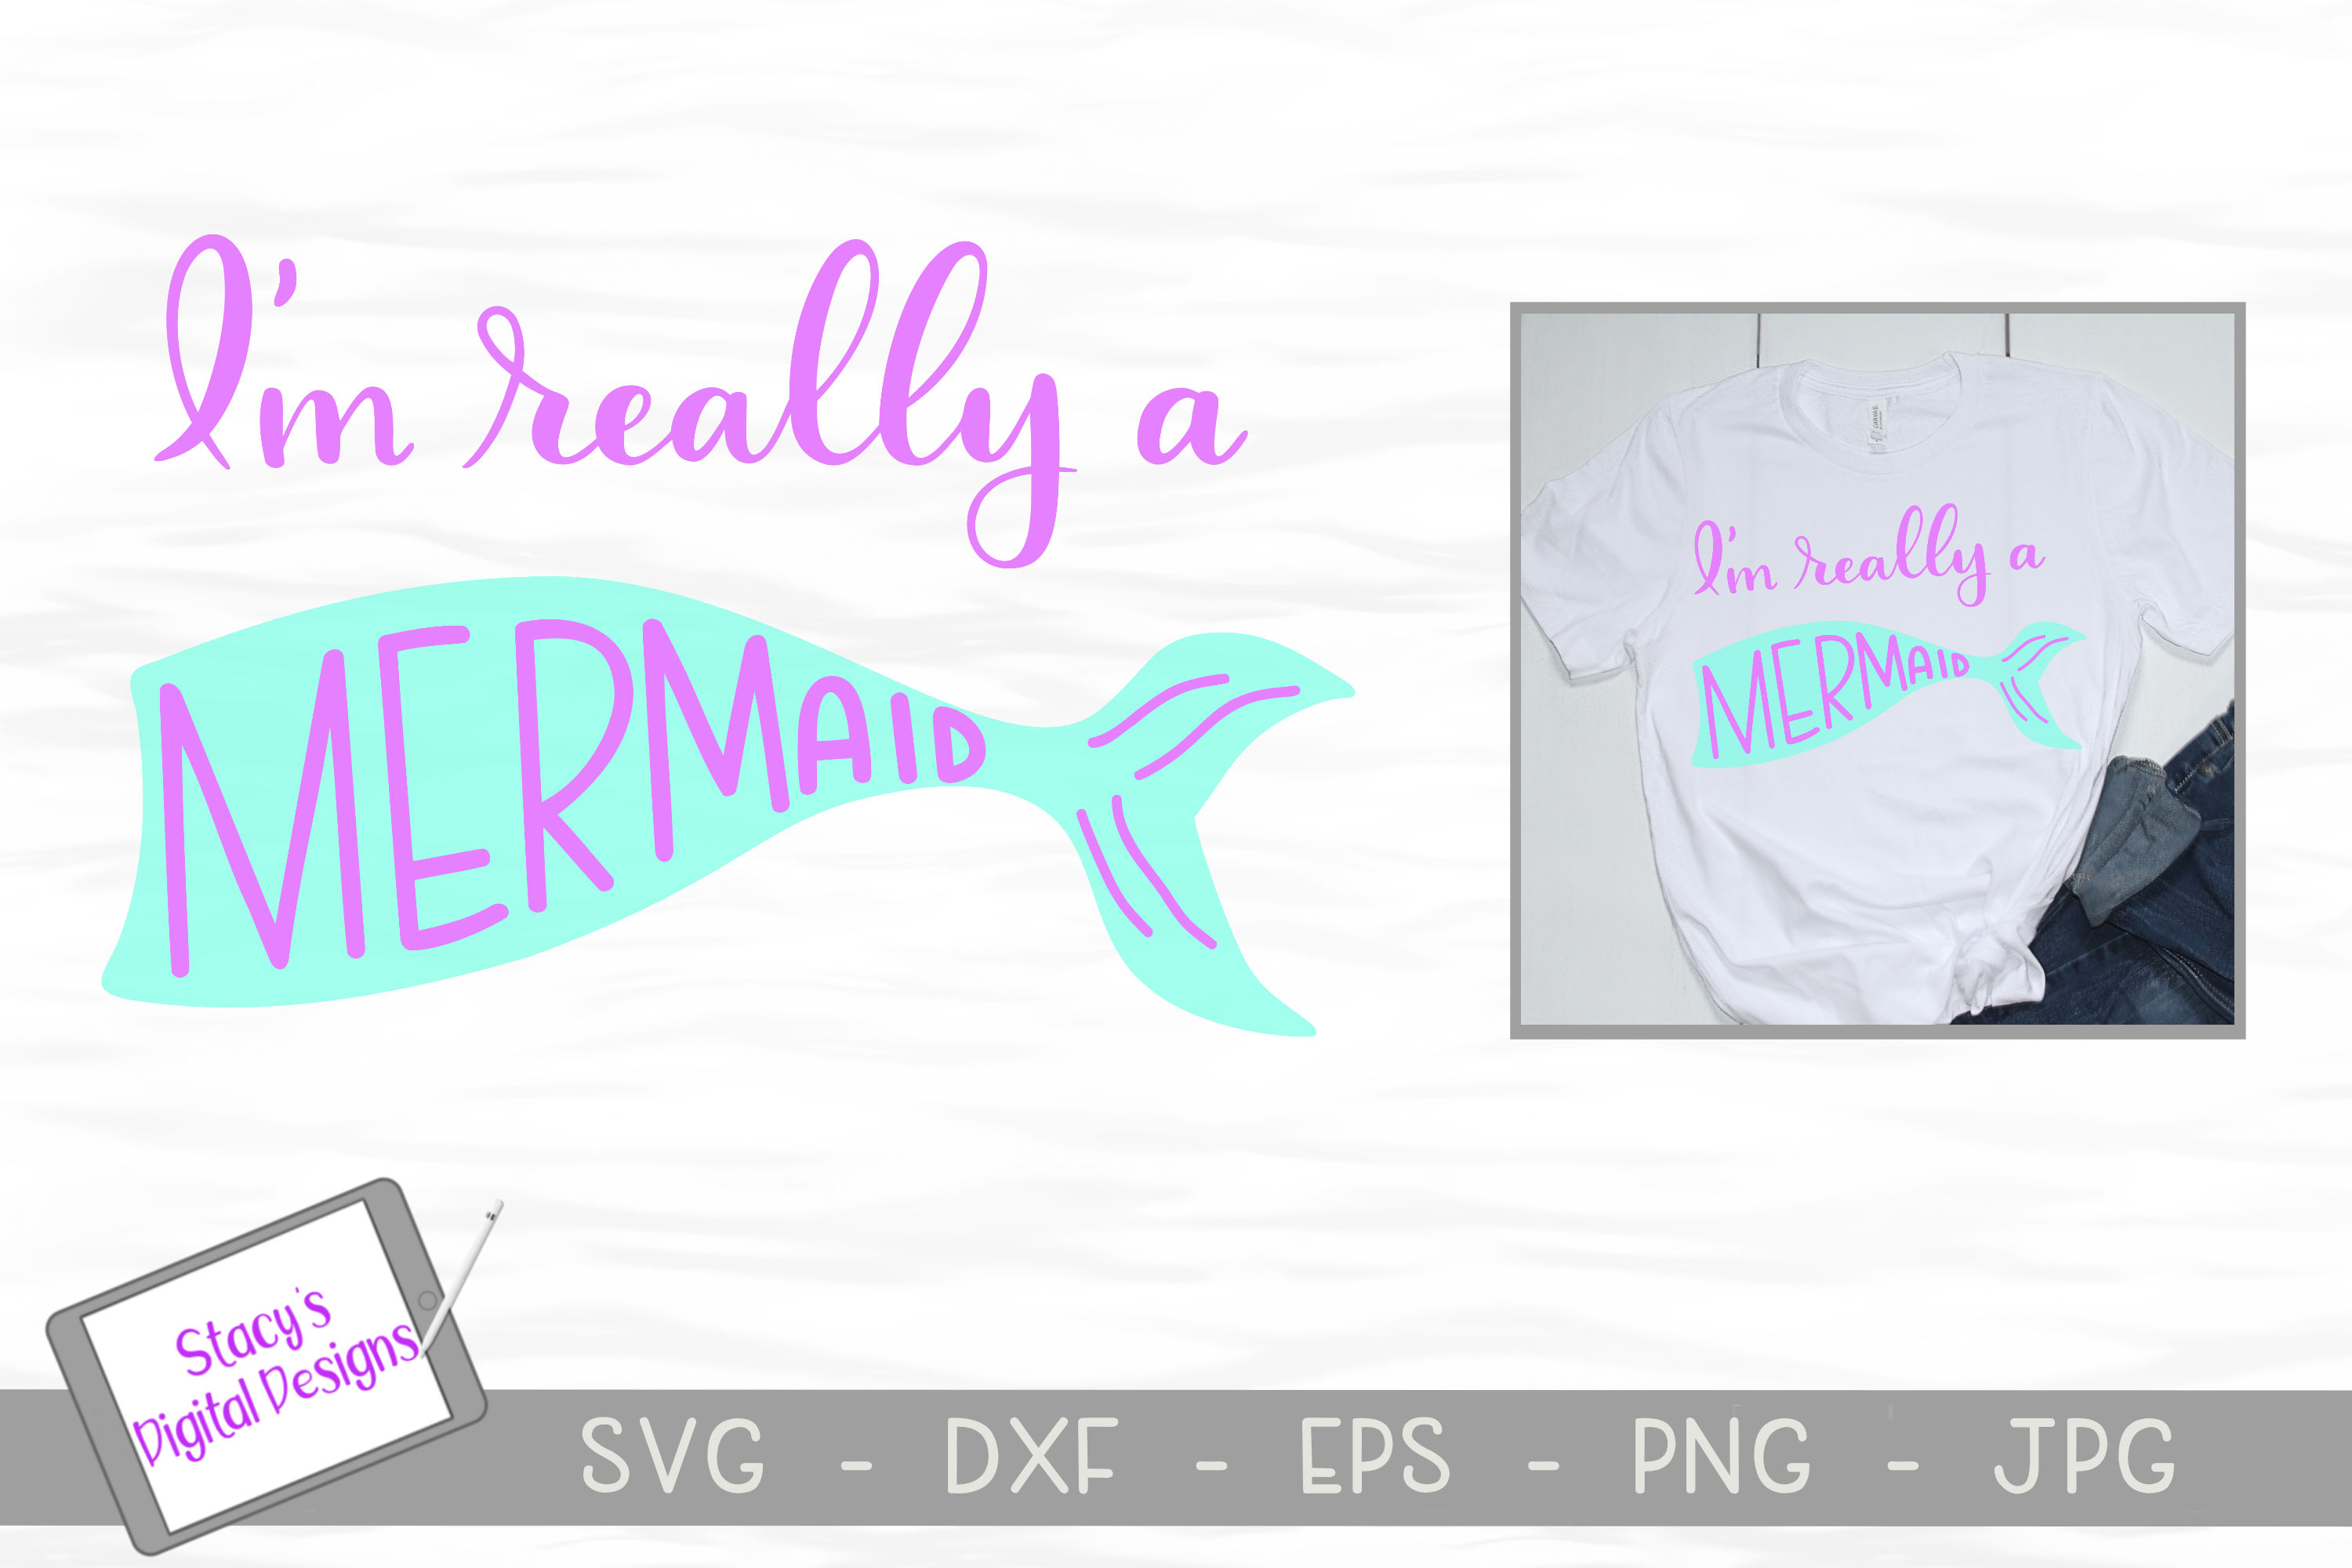 Mermaid SVG Bundle - 4 Mermaid SVG designs example image 4